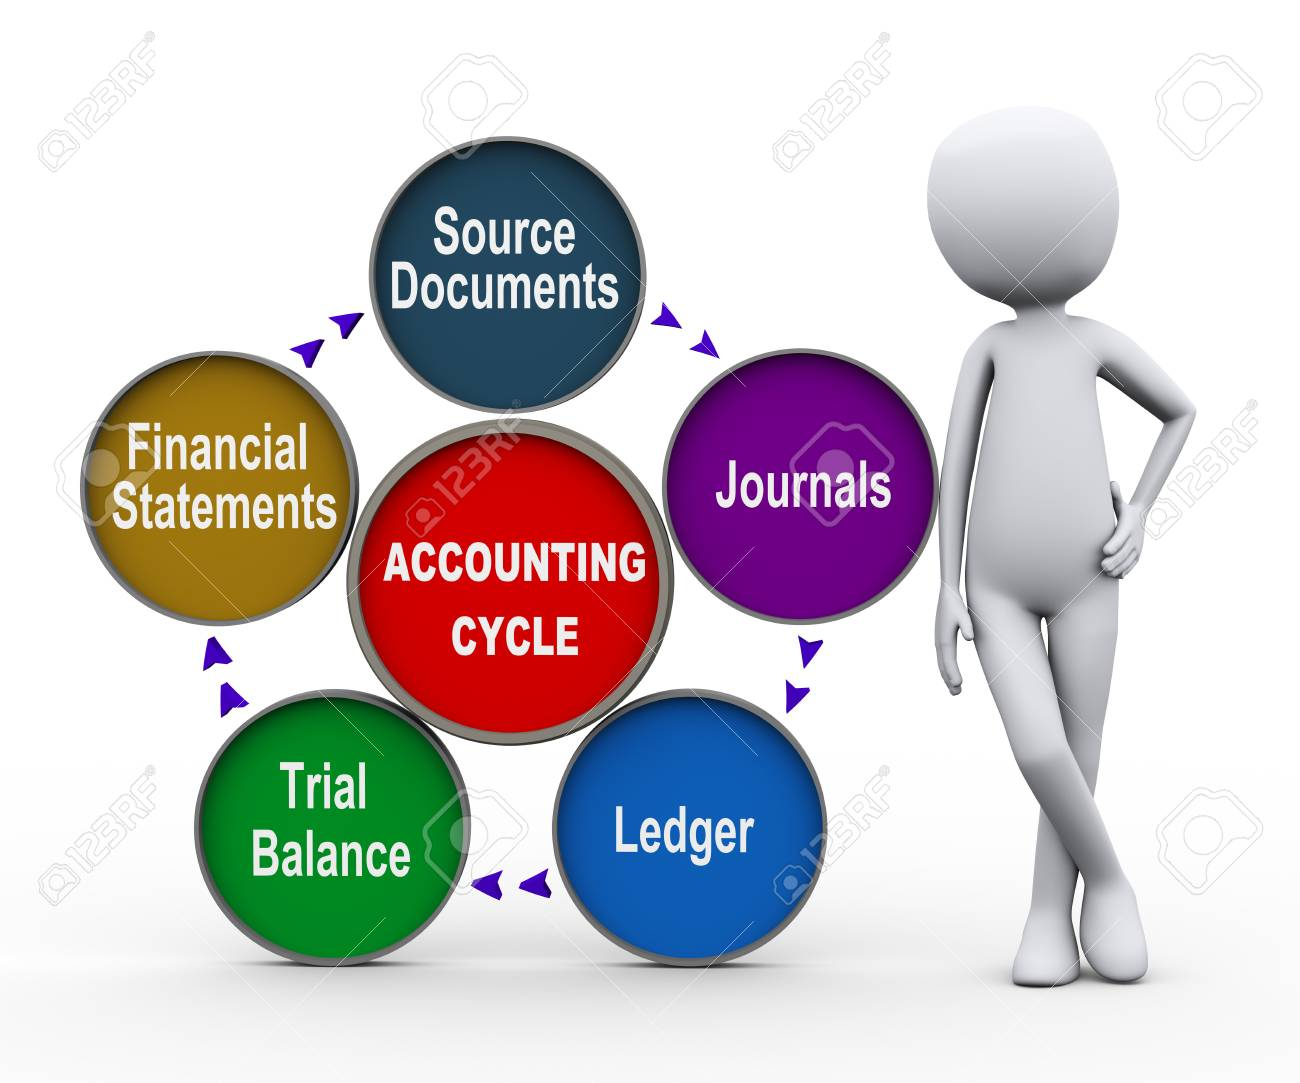 hight resolution of 3d illustration of man standing circular flow chart of life cycle of accounting process stock illustration